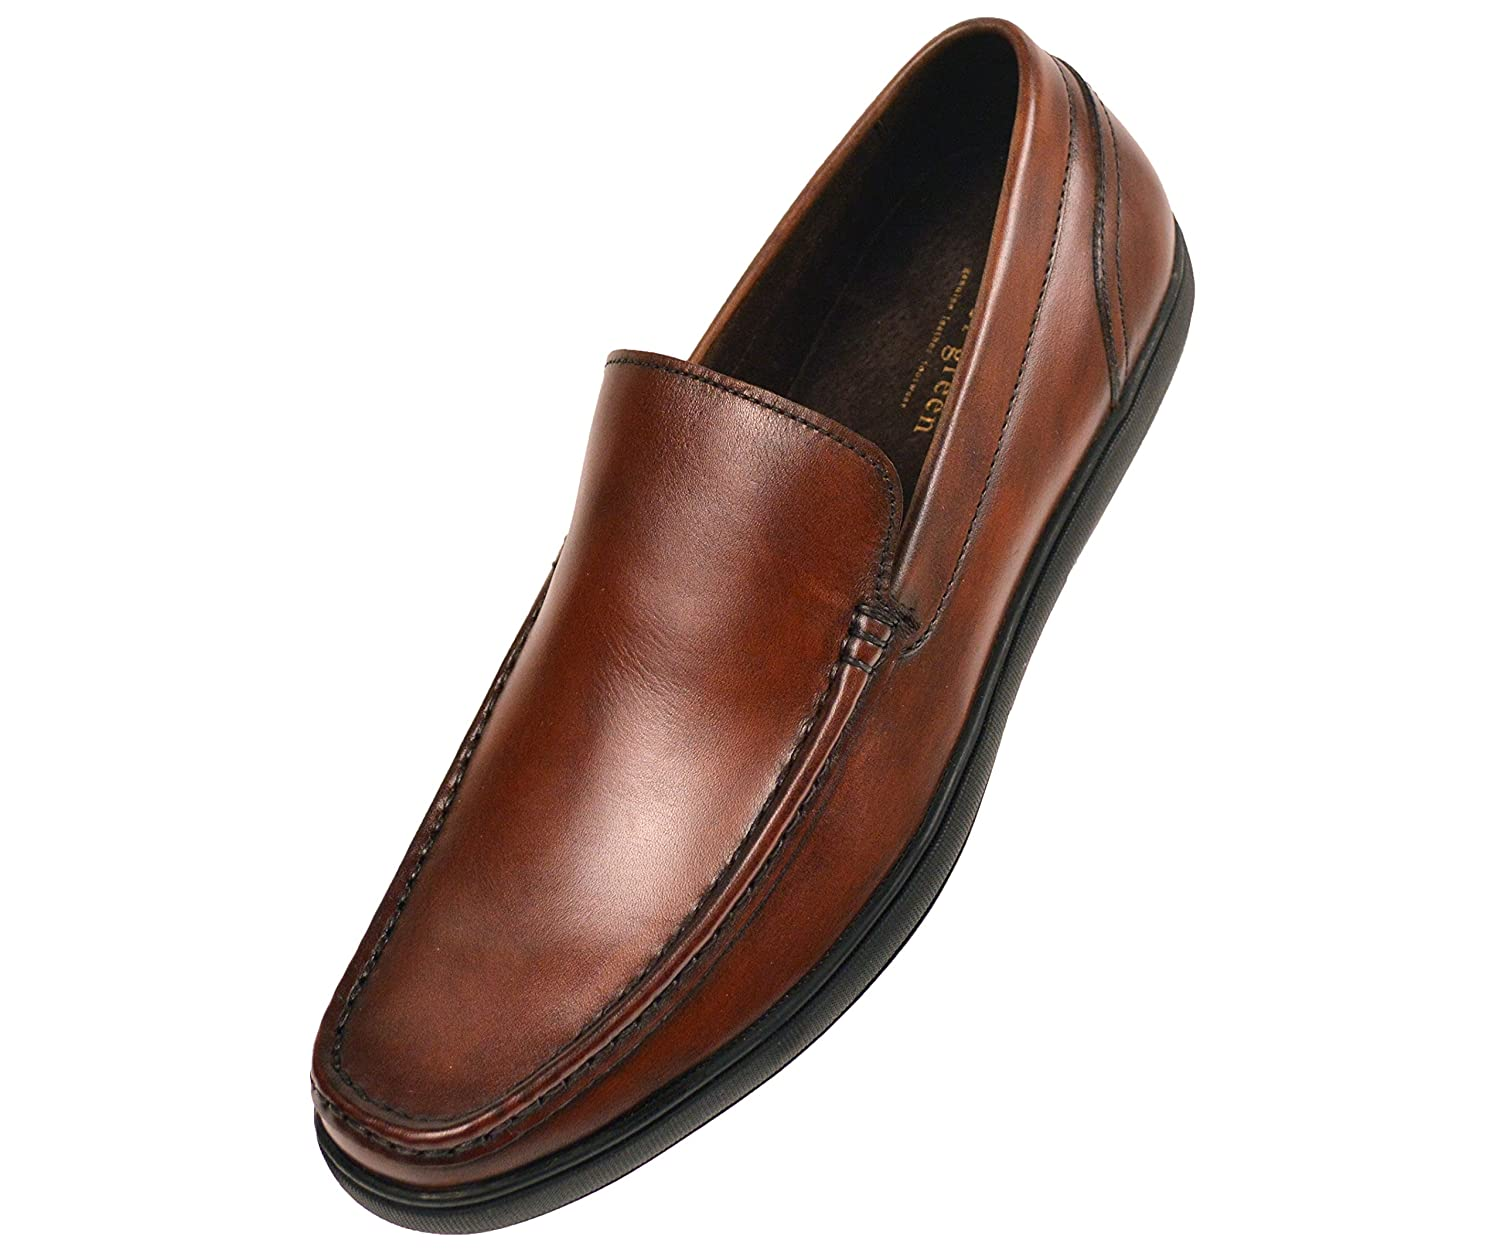 Asher Green Mens Tan Genuine Leather Moc Toe Slip On Dress Shoe with Black Rubber Sole Style Finlay-028